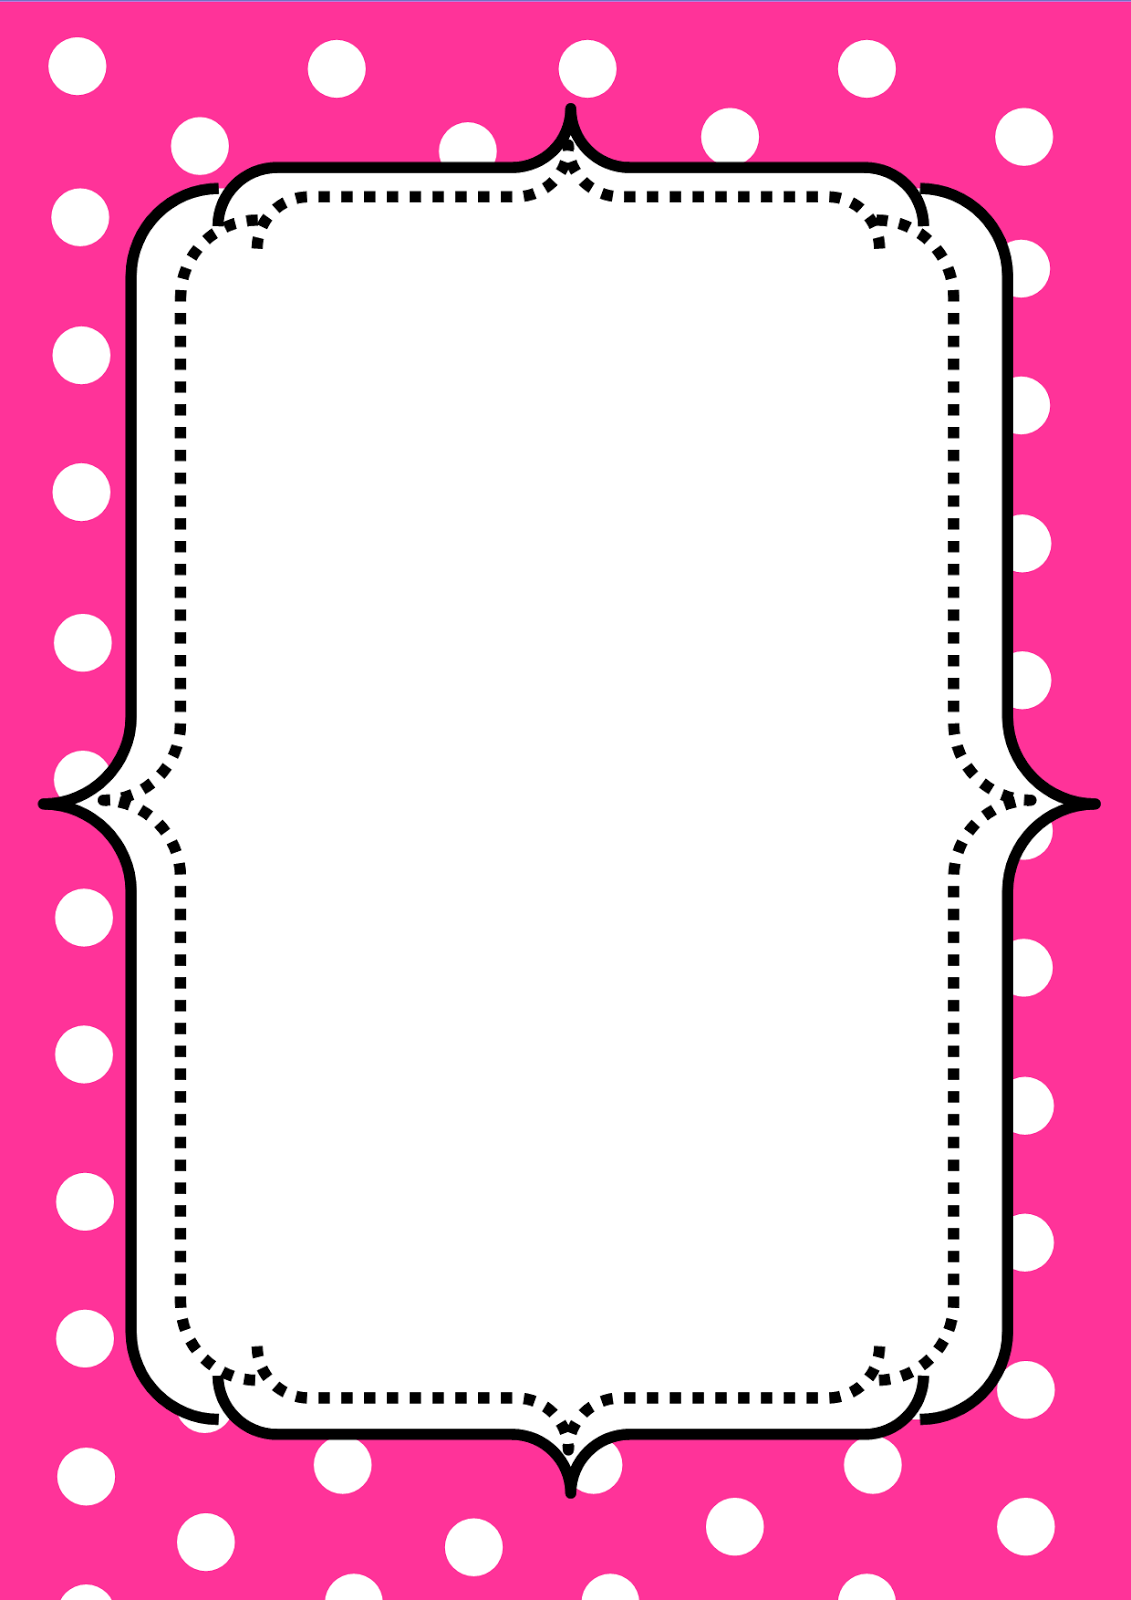 Free Girl Border Cliparts, Download Free Clip Art, Free Clip.